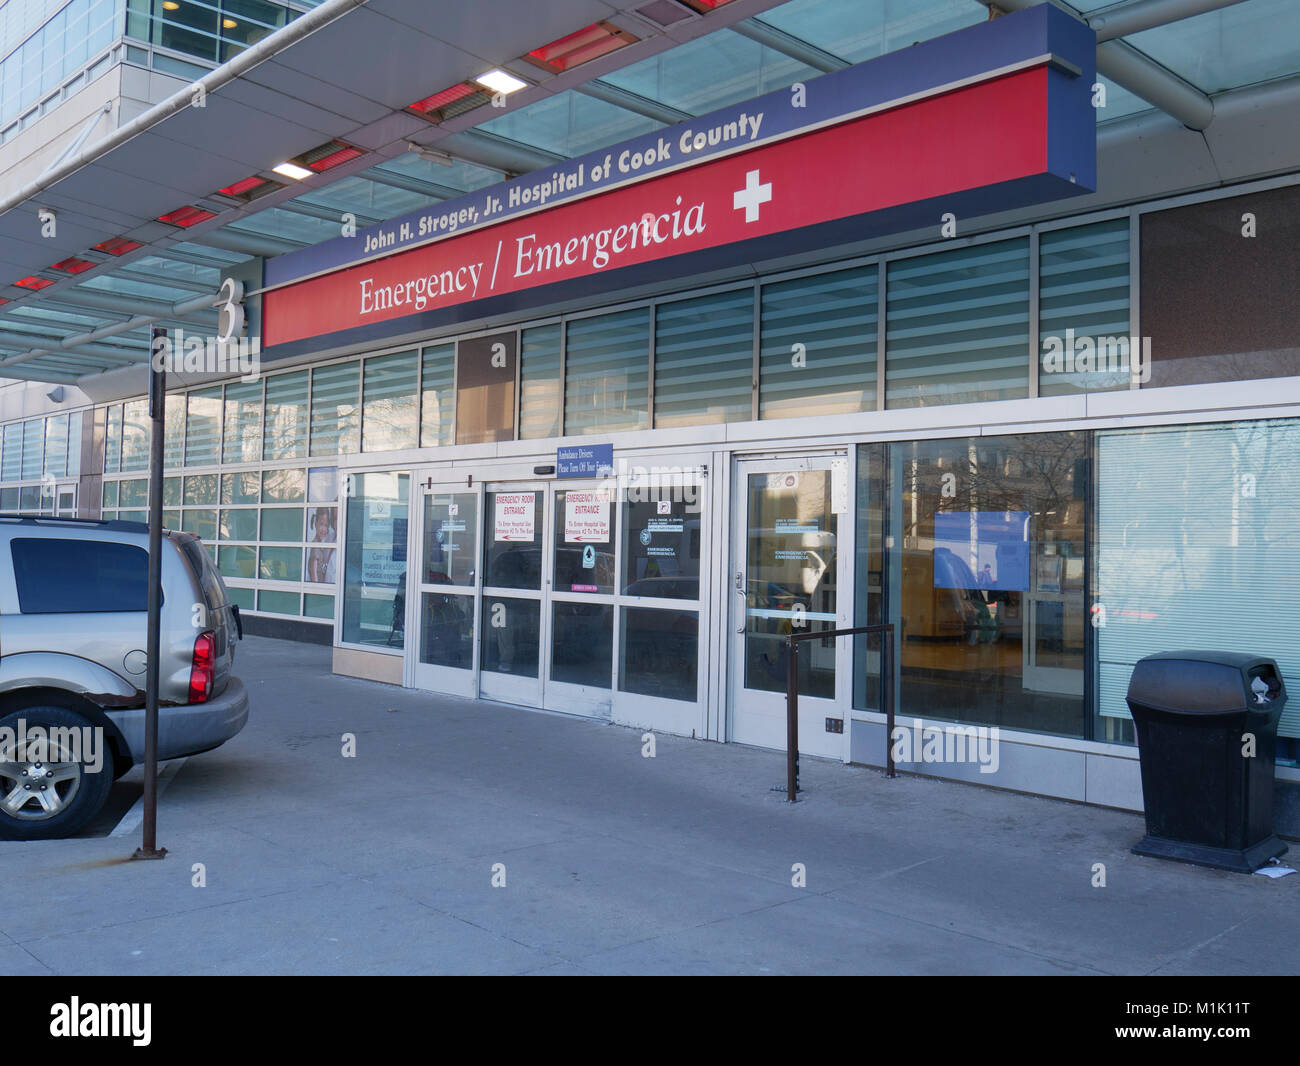 Emergency room entrance stock photos emergency room entrance stock john h stroger hospital emergency entrance chicago illinois stock image thecheapjerseys Gallery